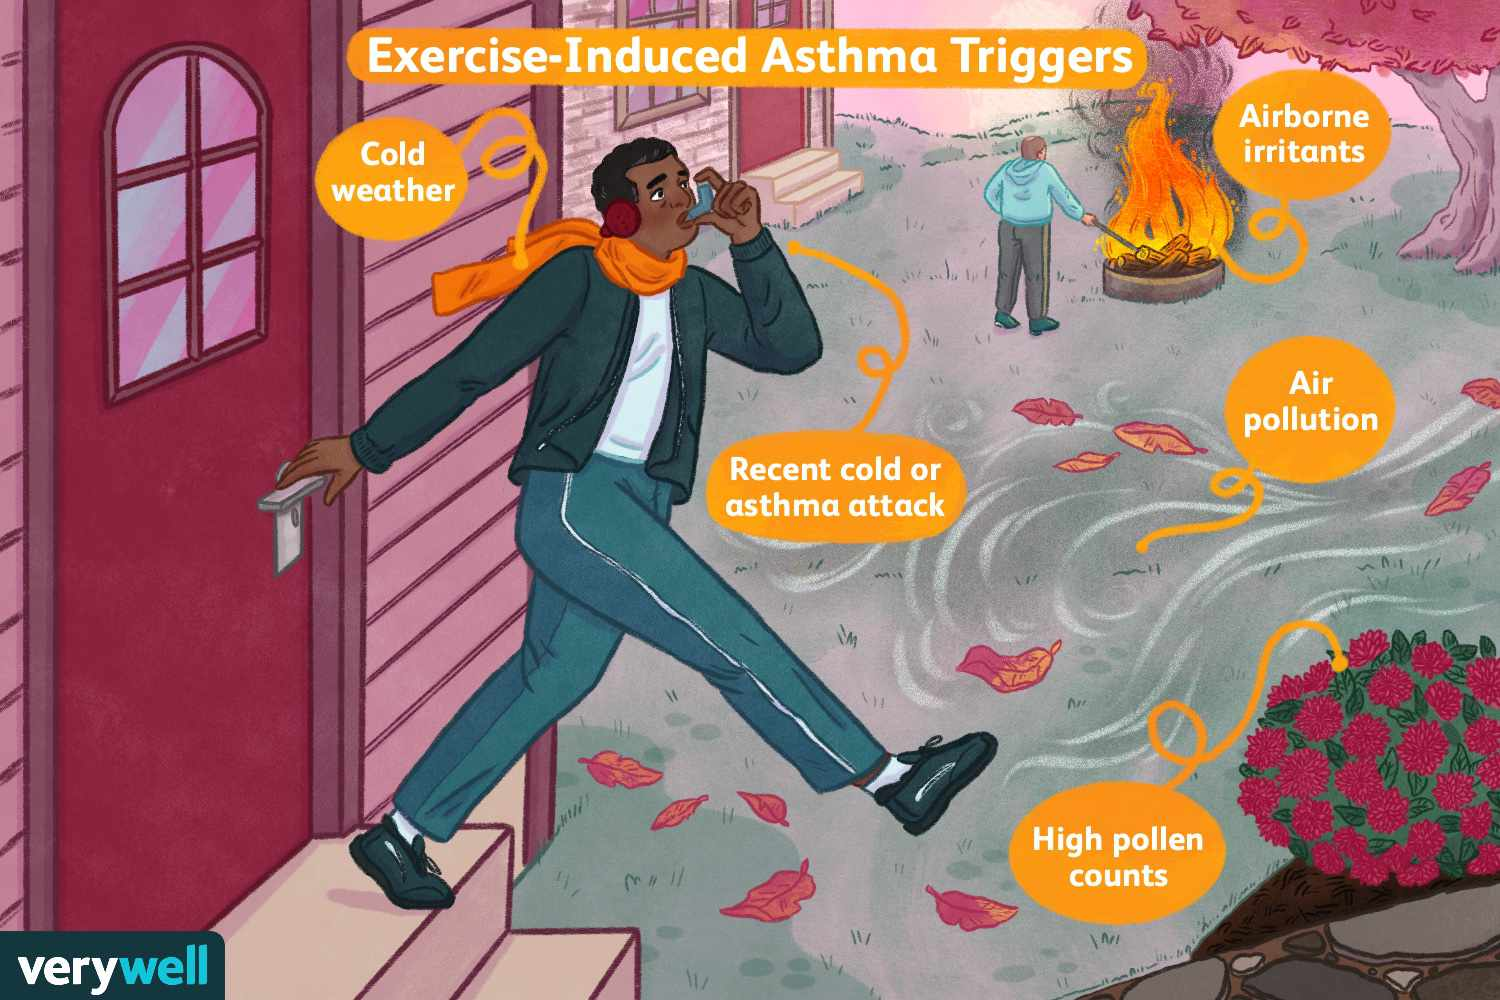 Exercise-Induced Asthma Triggers